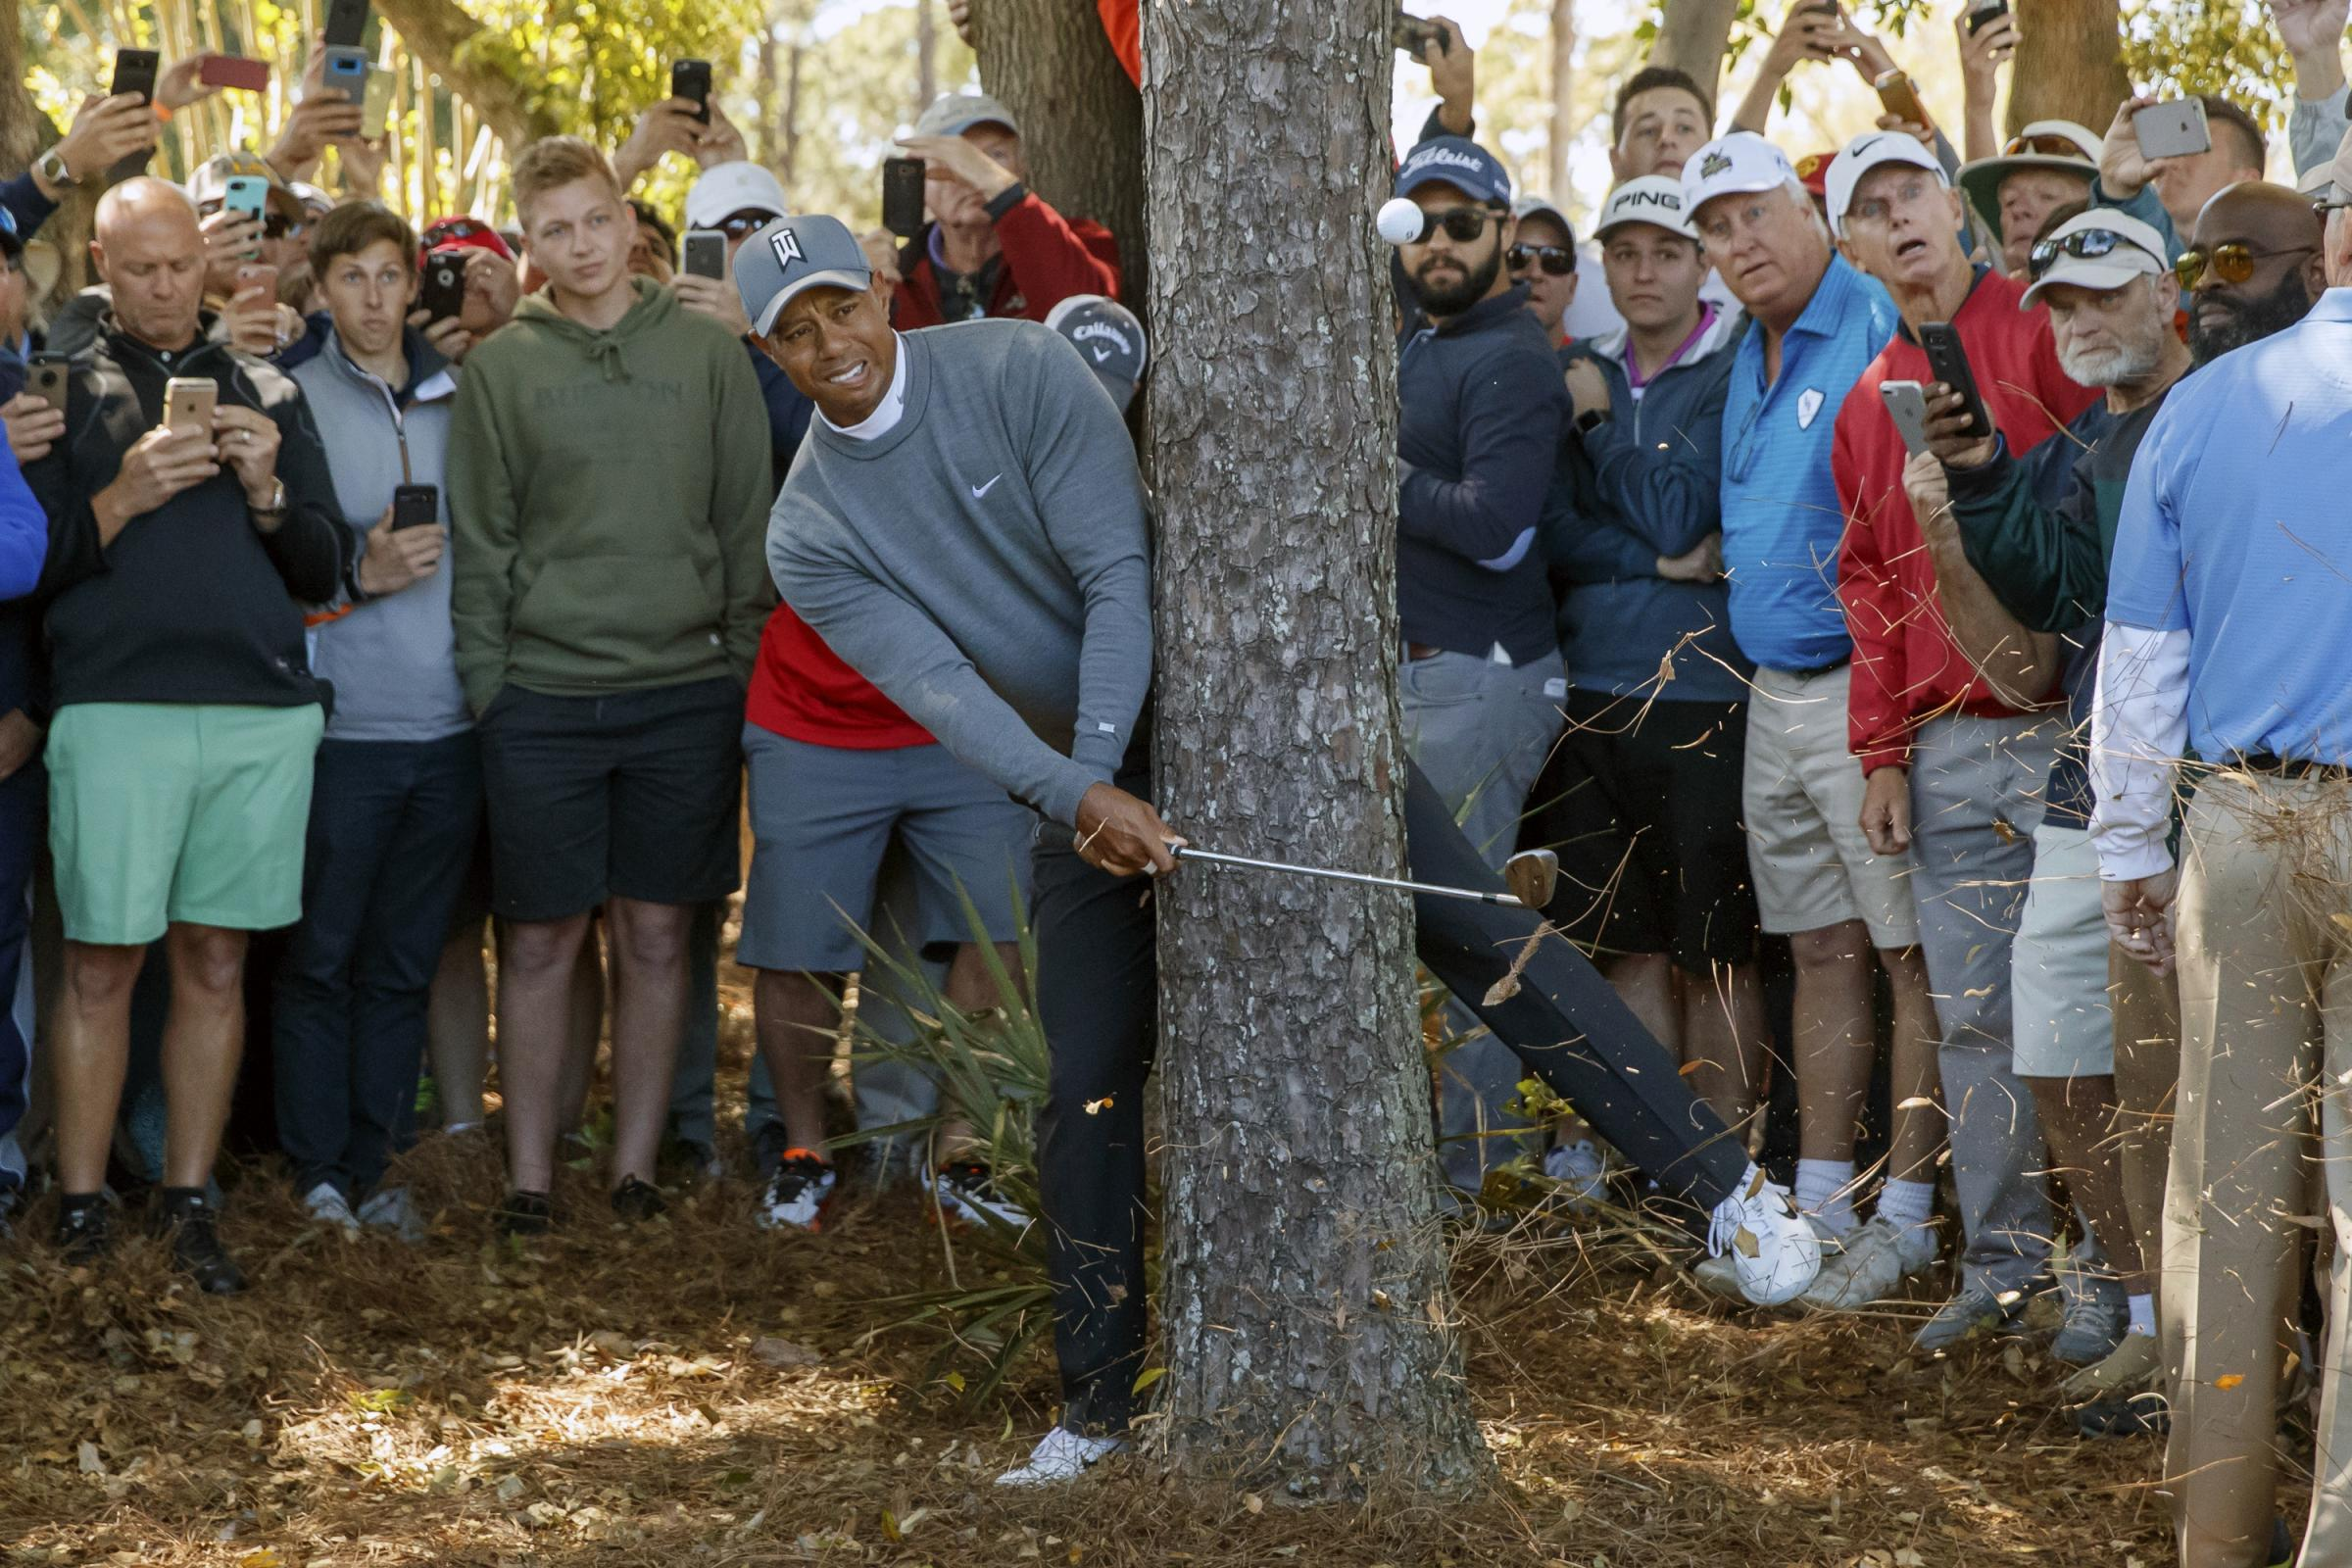 Tiger Woods finds trouble near a tree (Mike Carlson/AP)